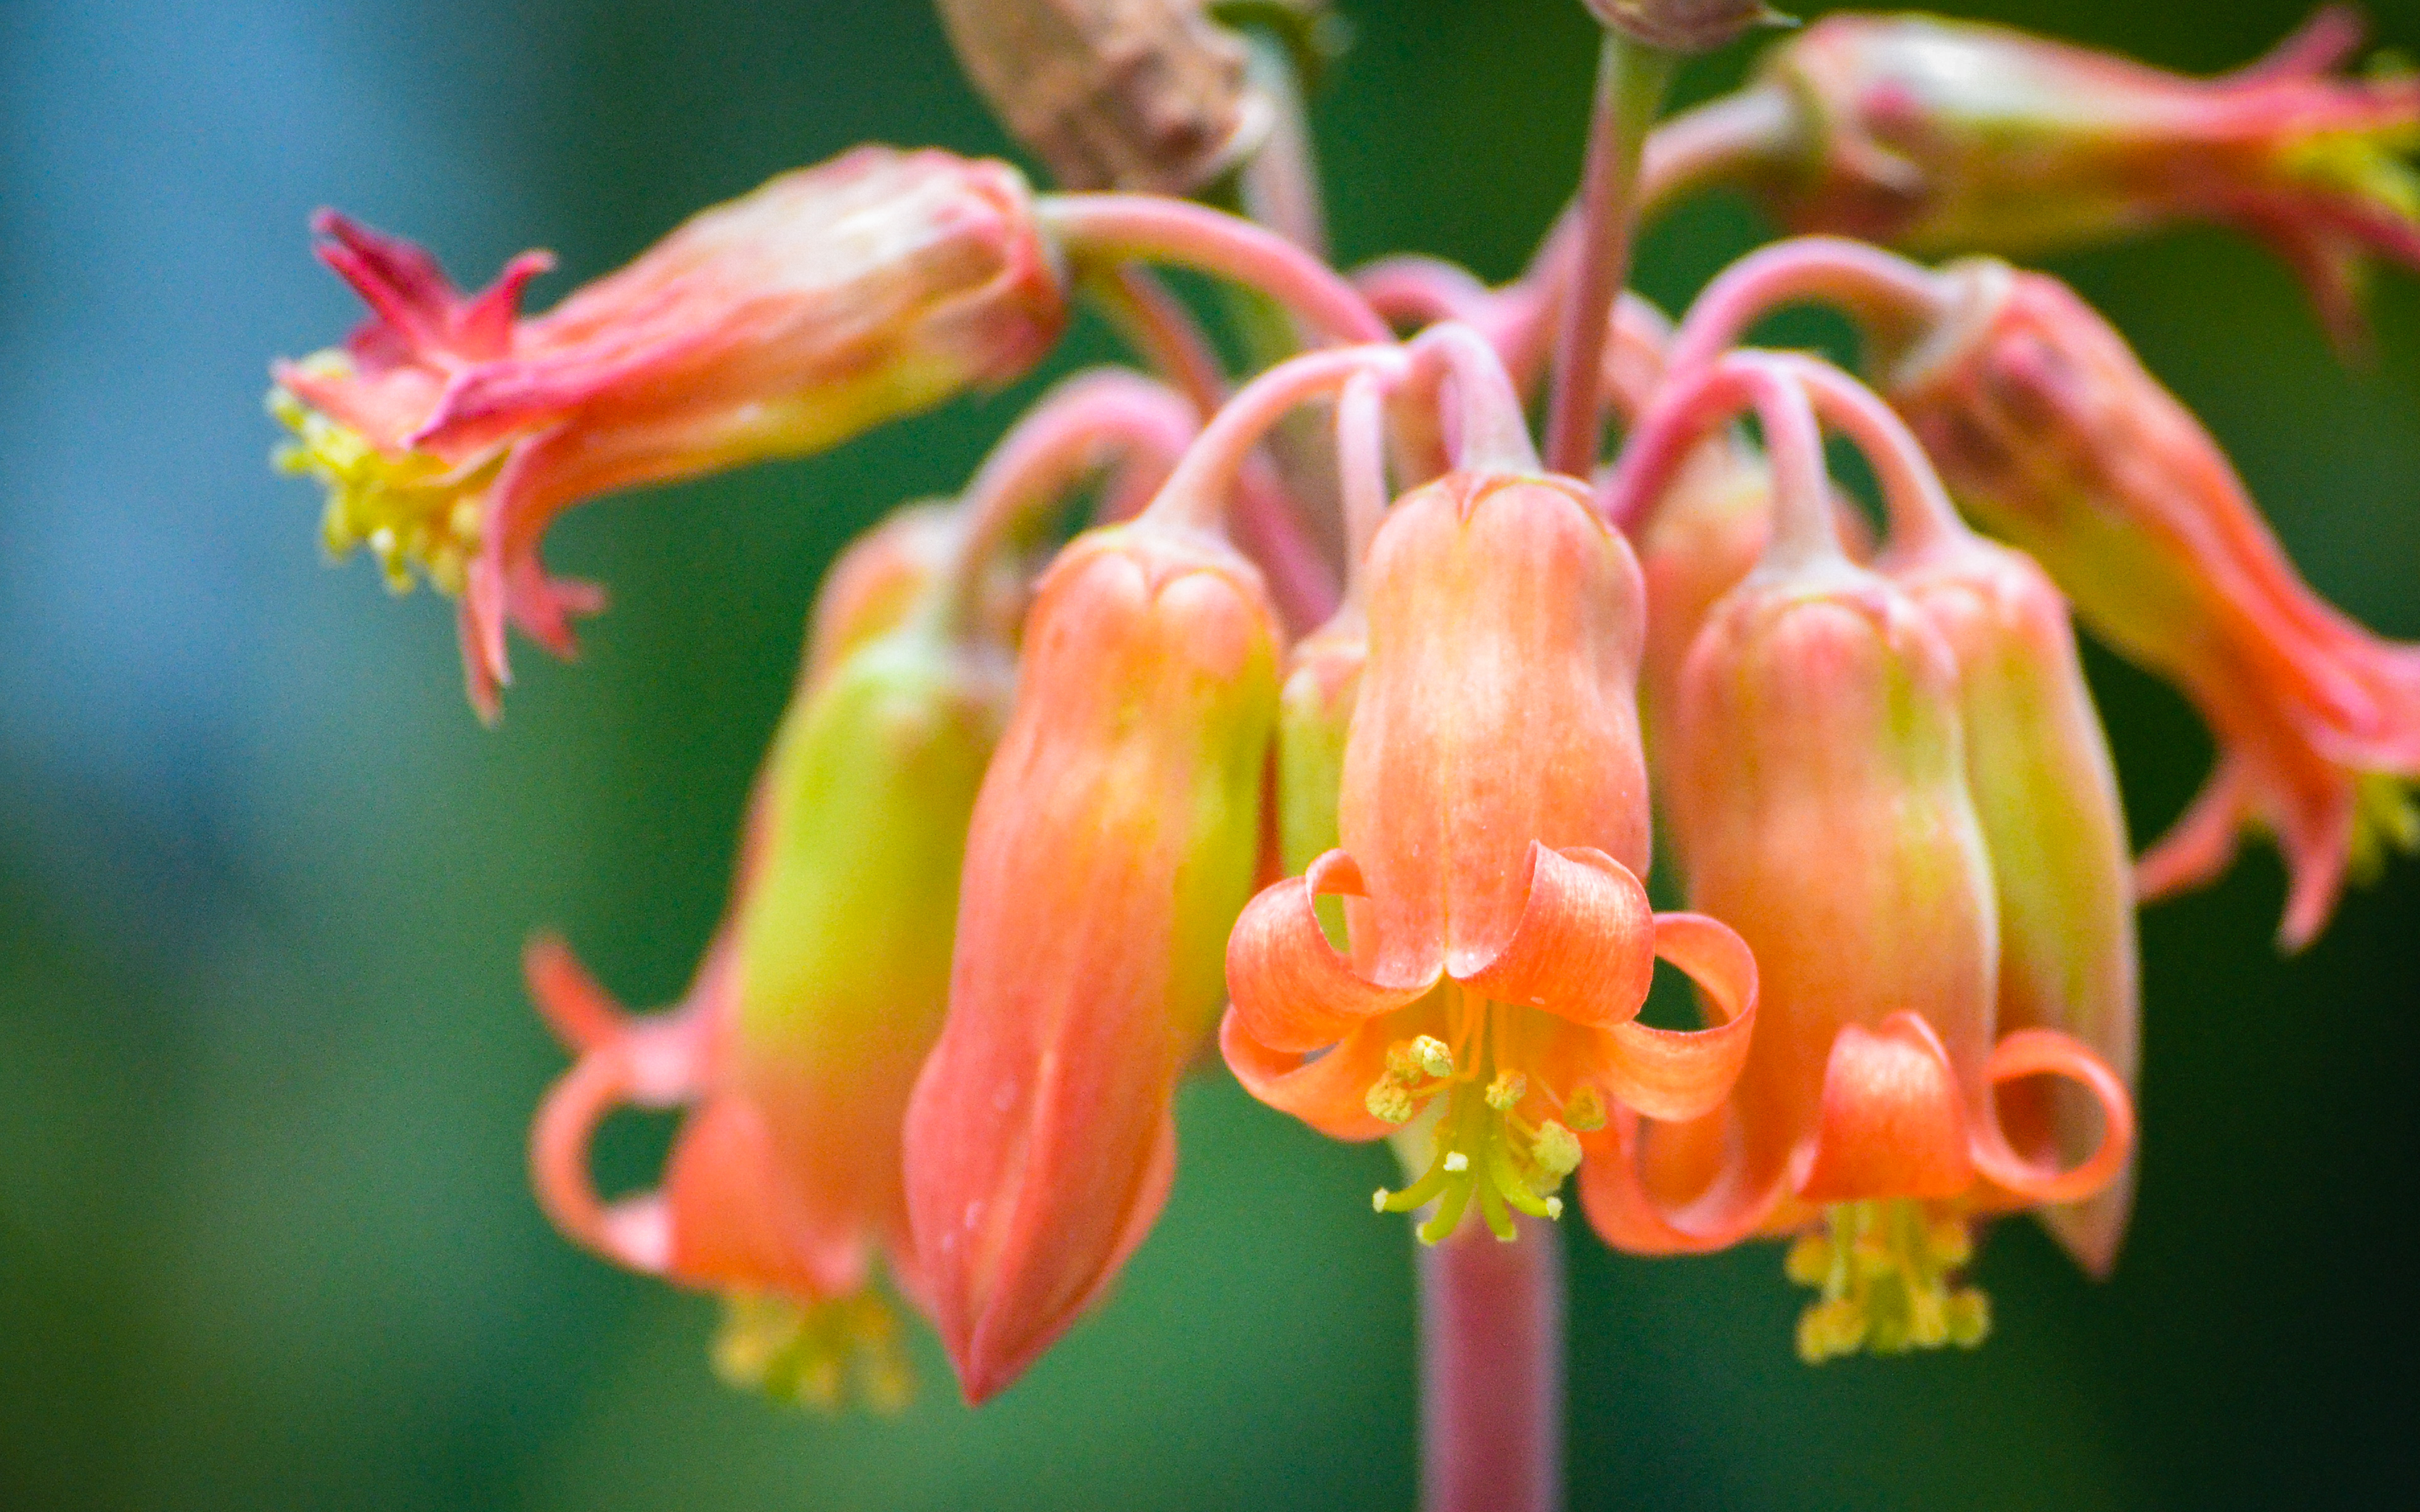 Hanging Succulent Flowers Photograph By Terry Majamaki